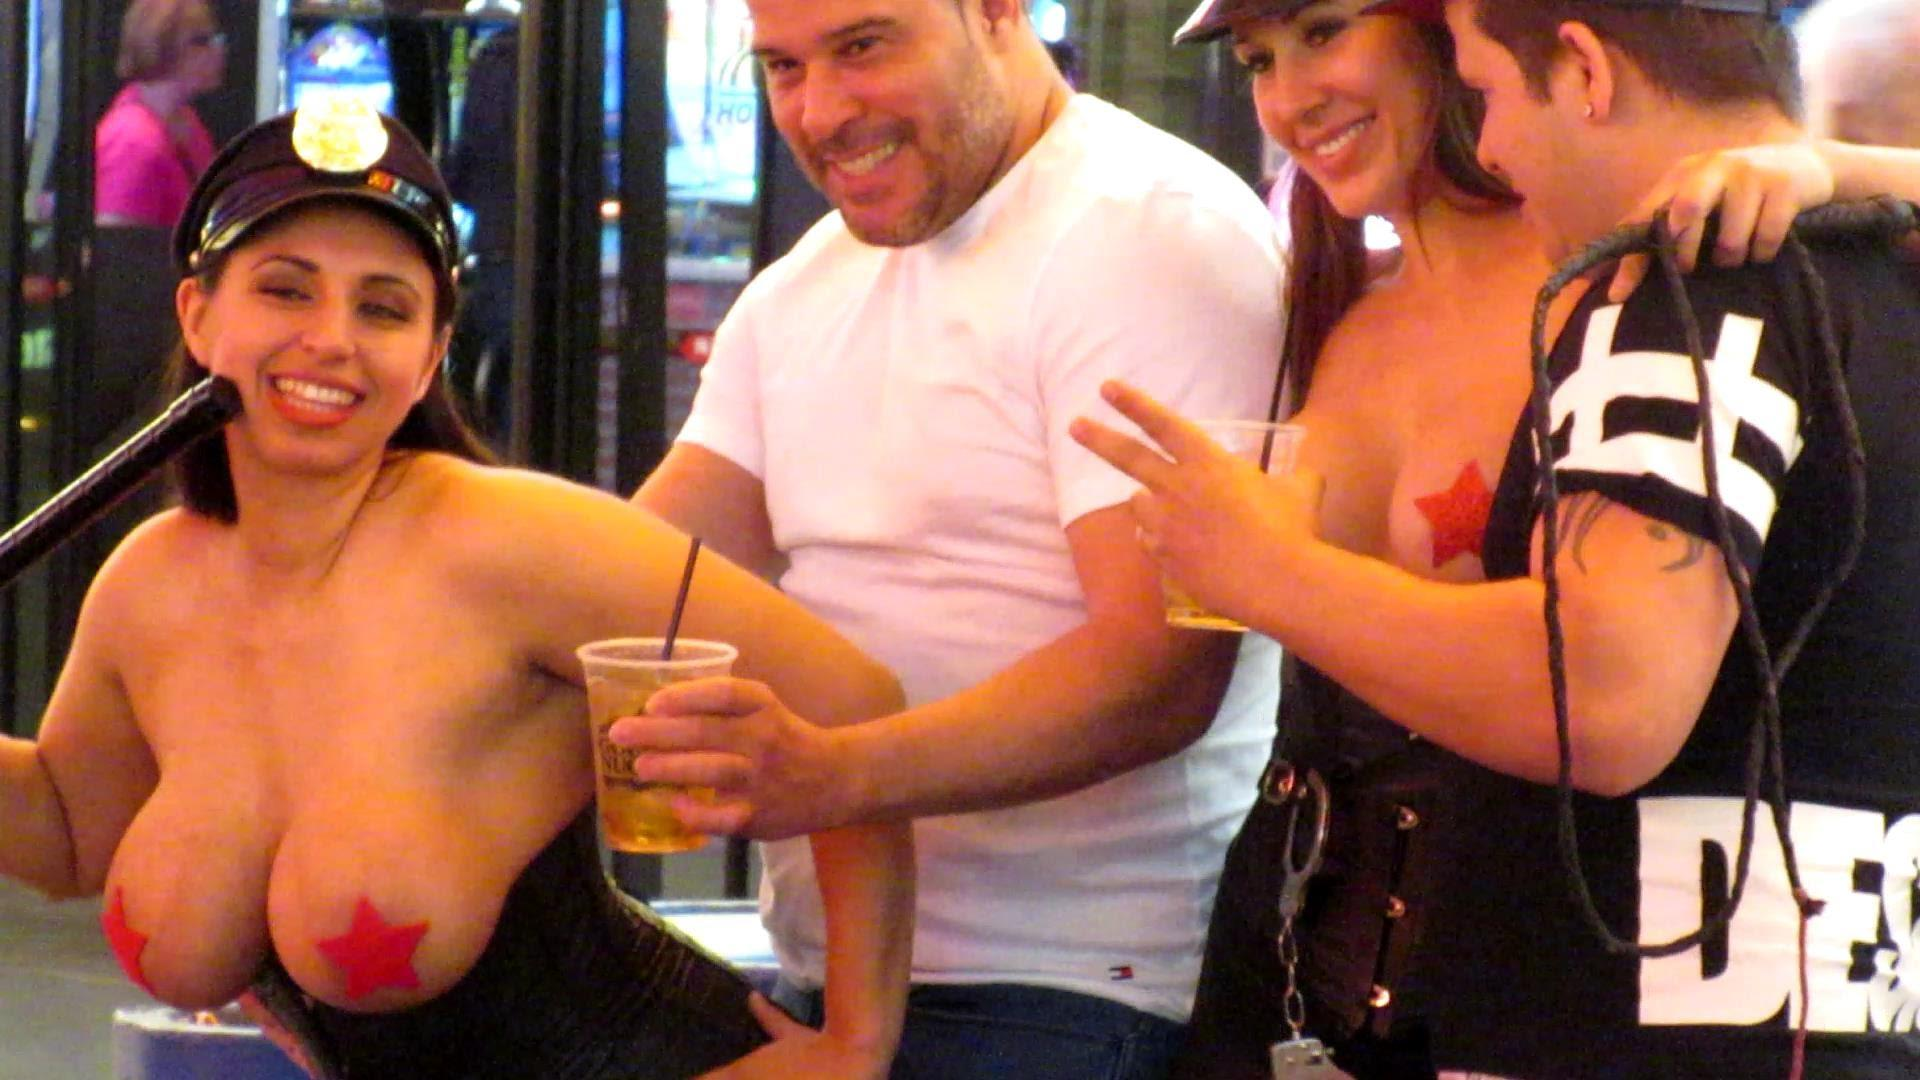 TheTrooper97 - Naked Chicks on Fremont Street